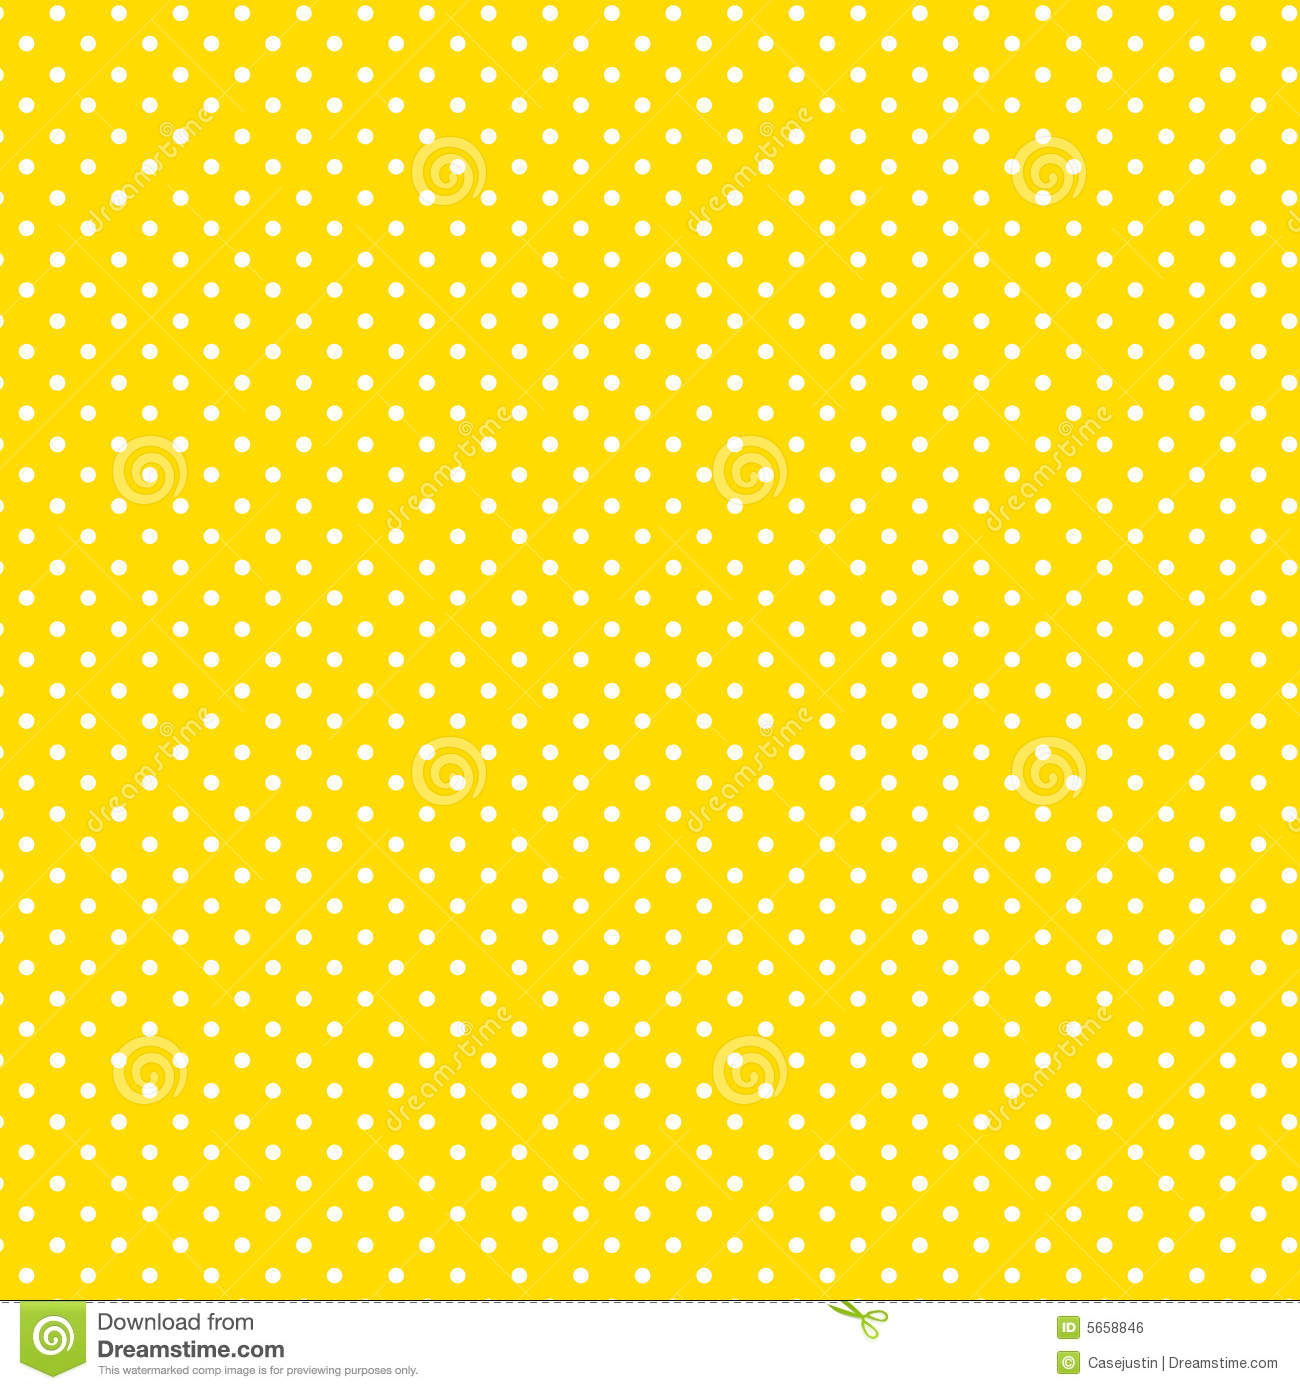 blue with white polka dots small white polkadots yellow background royalty free stock image